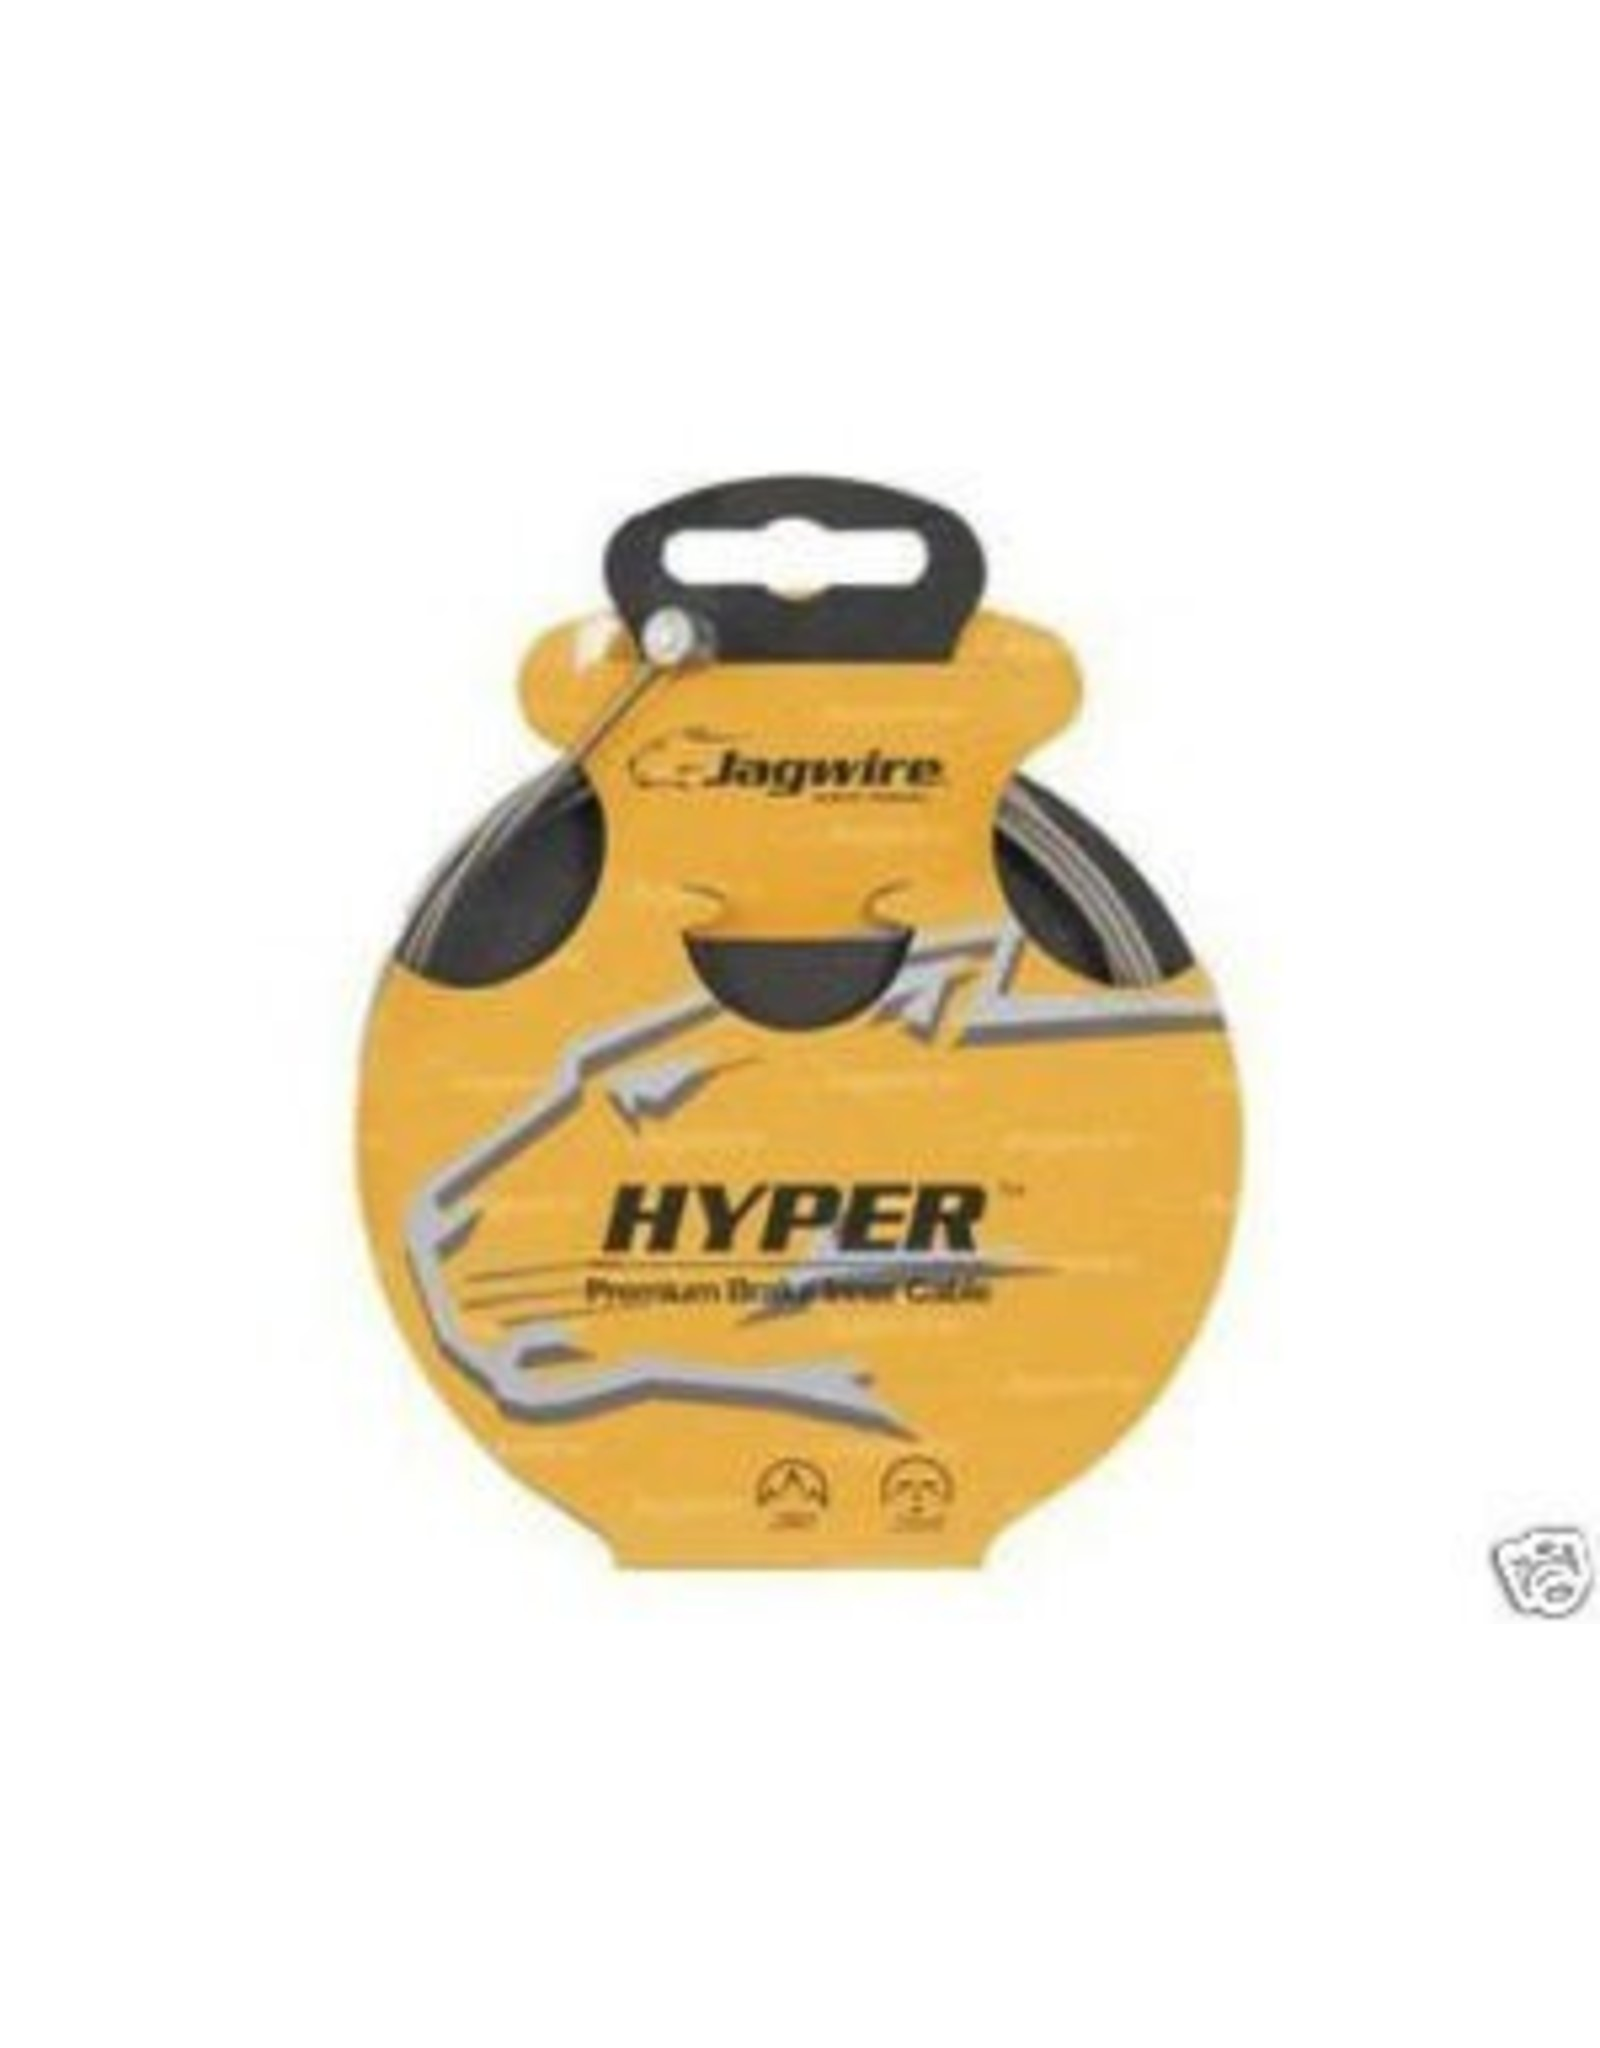 JAGWIRE Jagwire Hyper Slick Brake Cable for Tandem